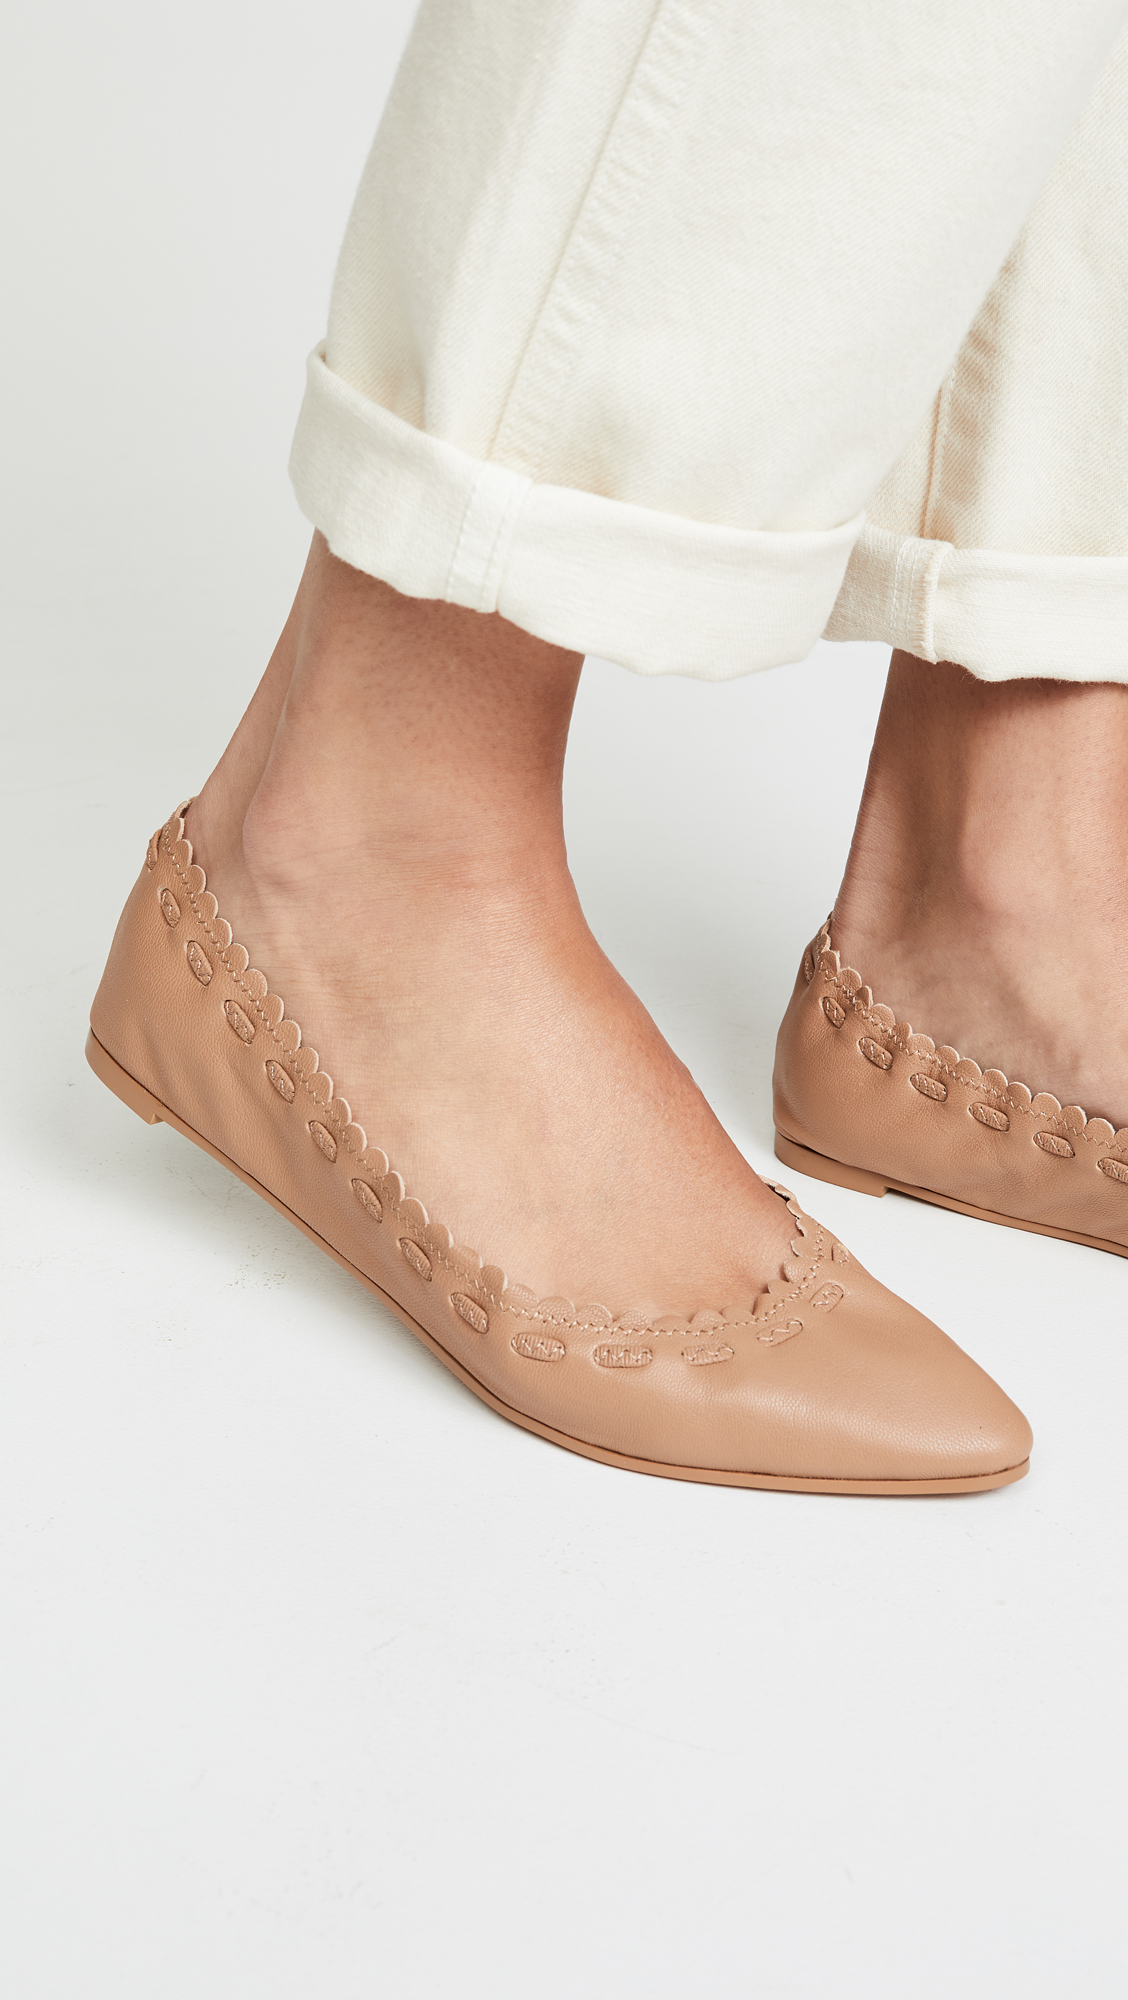 Nude Leather Ballet Flats